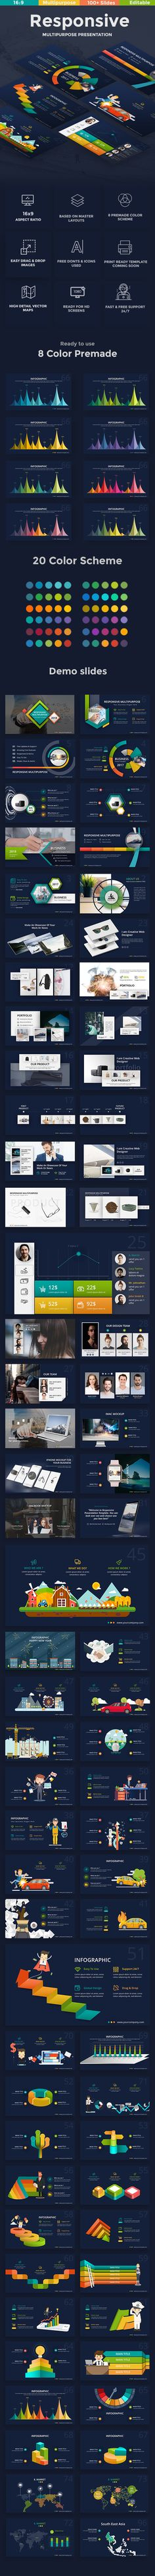 3 in 1 Creative Bundle Gooogle Slide Template — PPTX #company #yearly plan • Available here ➝ https://graphicriver.net/item/3-in-1-creative-bundle-gooogle-slide-template/20952621?ref=pxcr